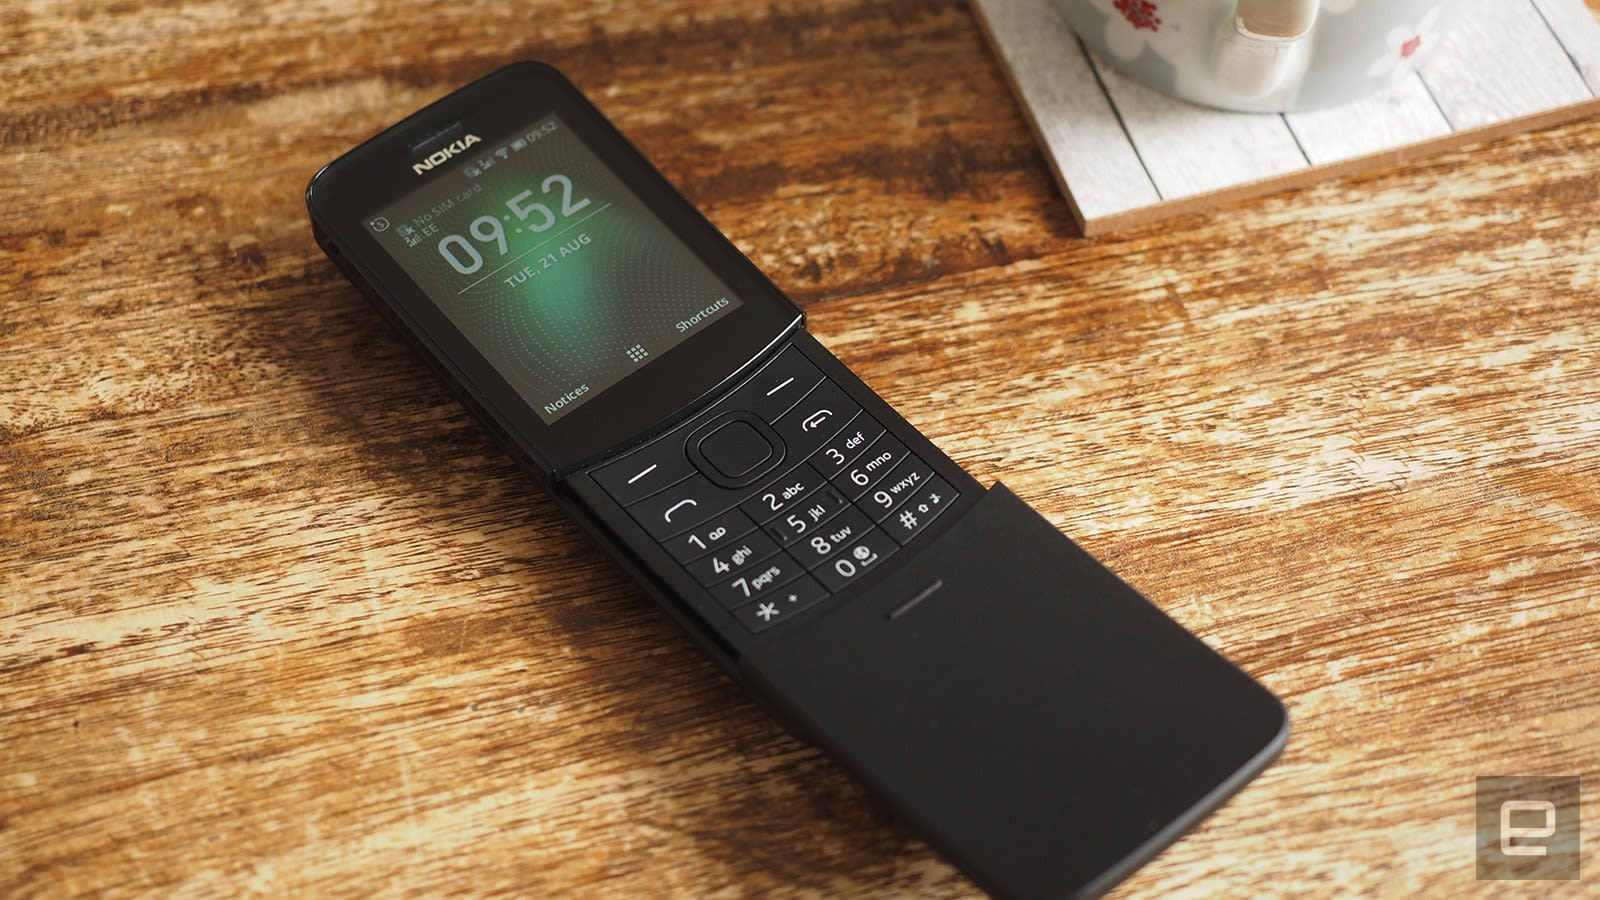 Best Dumb Phone 2020 The Nokia 8110 4G is smarter than your average dumb phone